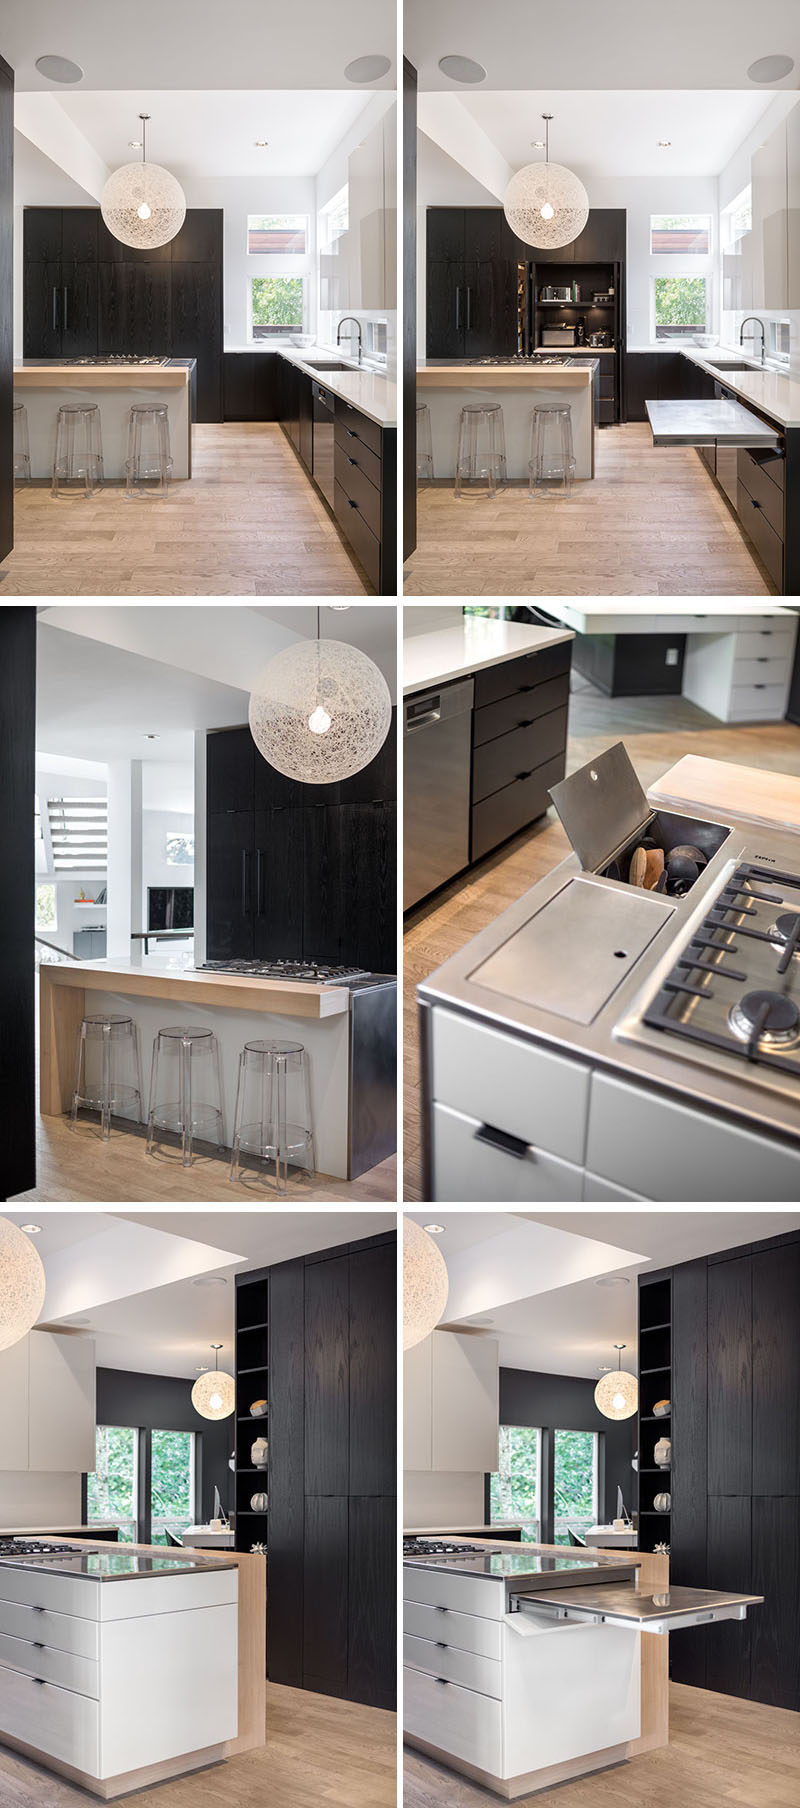 This modern kitchen has incorporatedhidden, multi-functional elements like custom pull out prep surfaces that tuck away, pop up utensil vessels, and a dish drying rack in the cabinet above the sink. #ModernKitchen #KitchenDesign